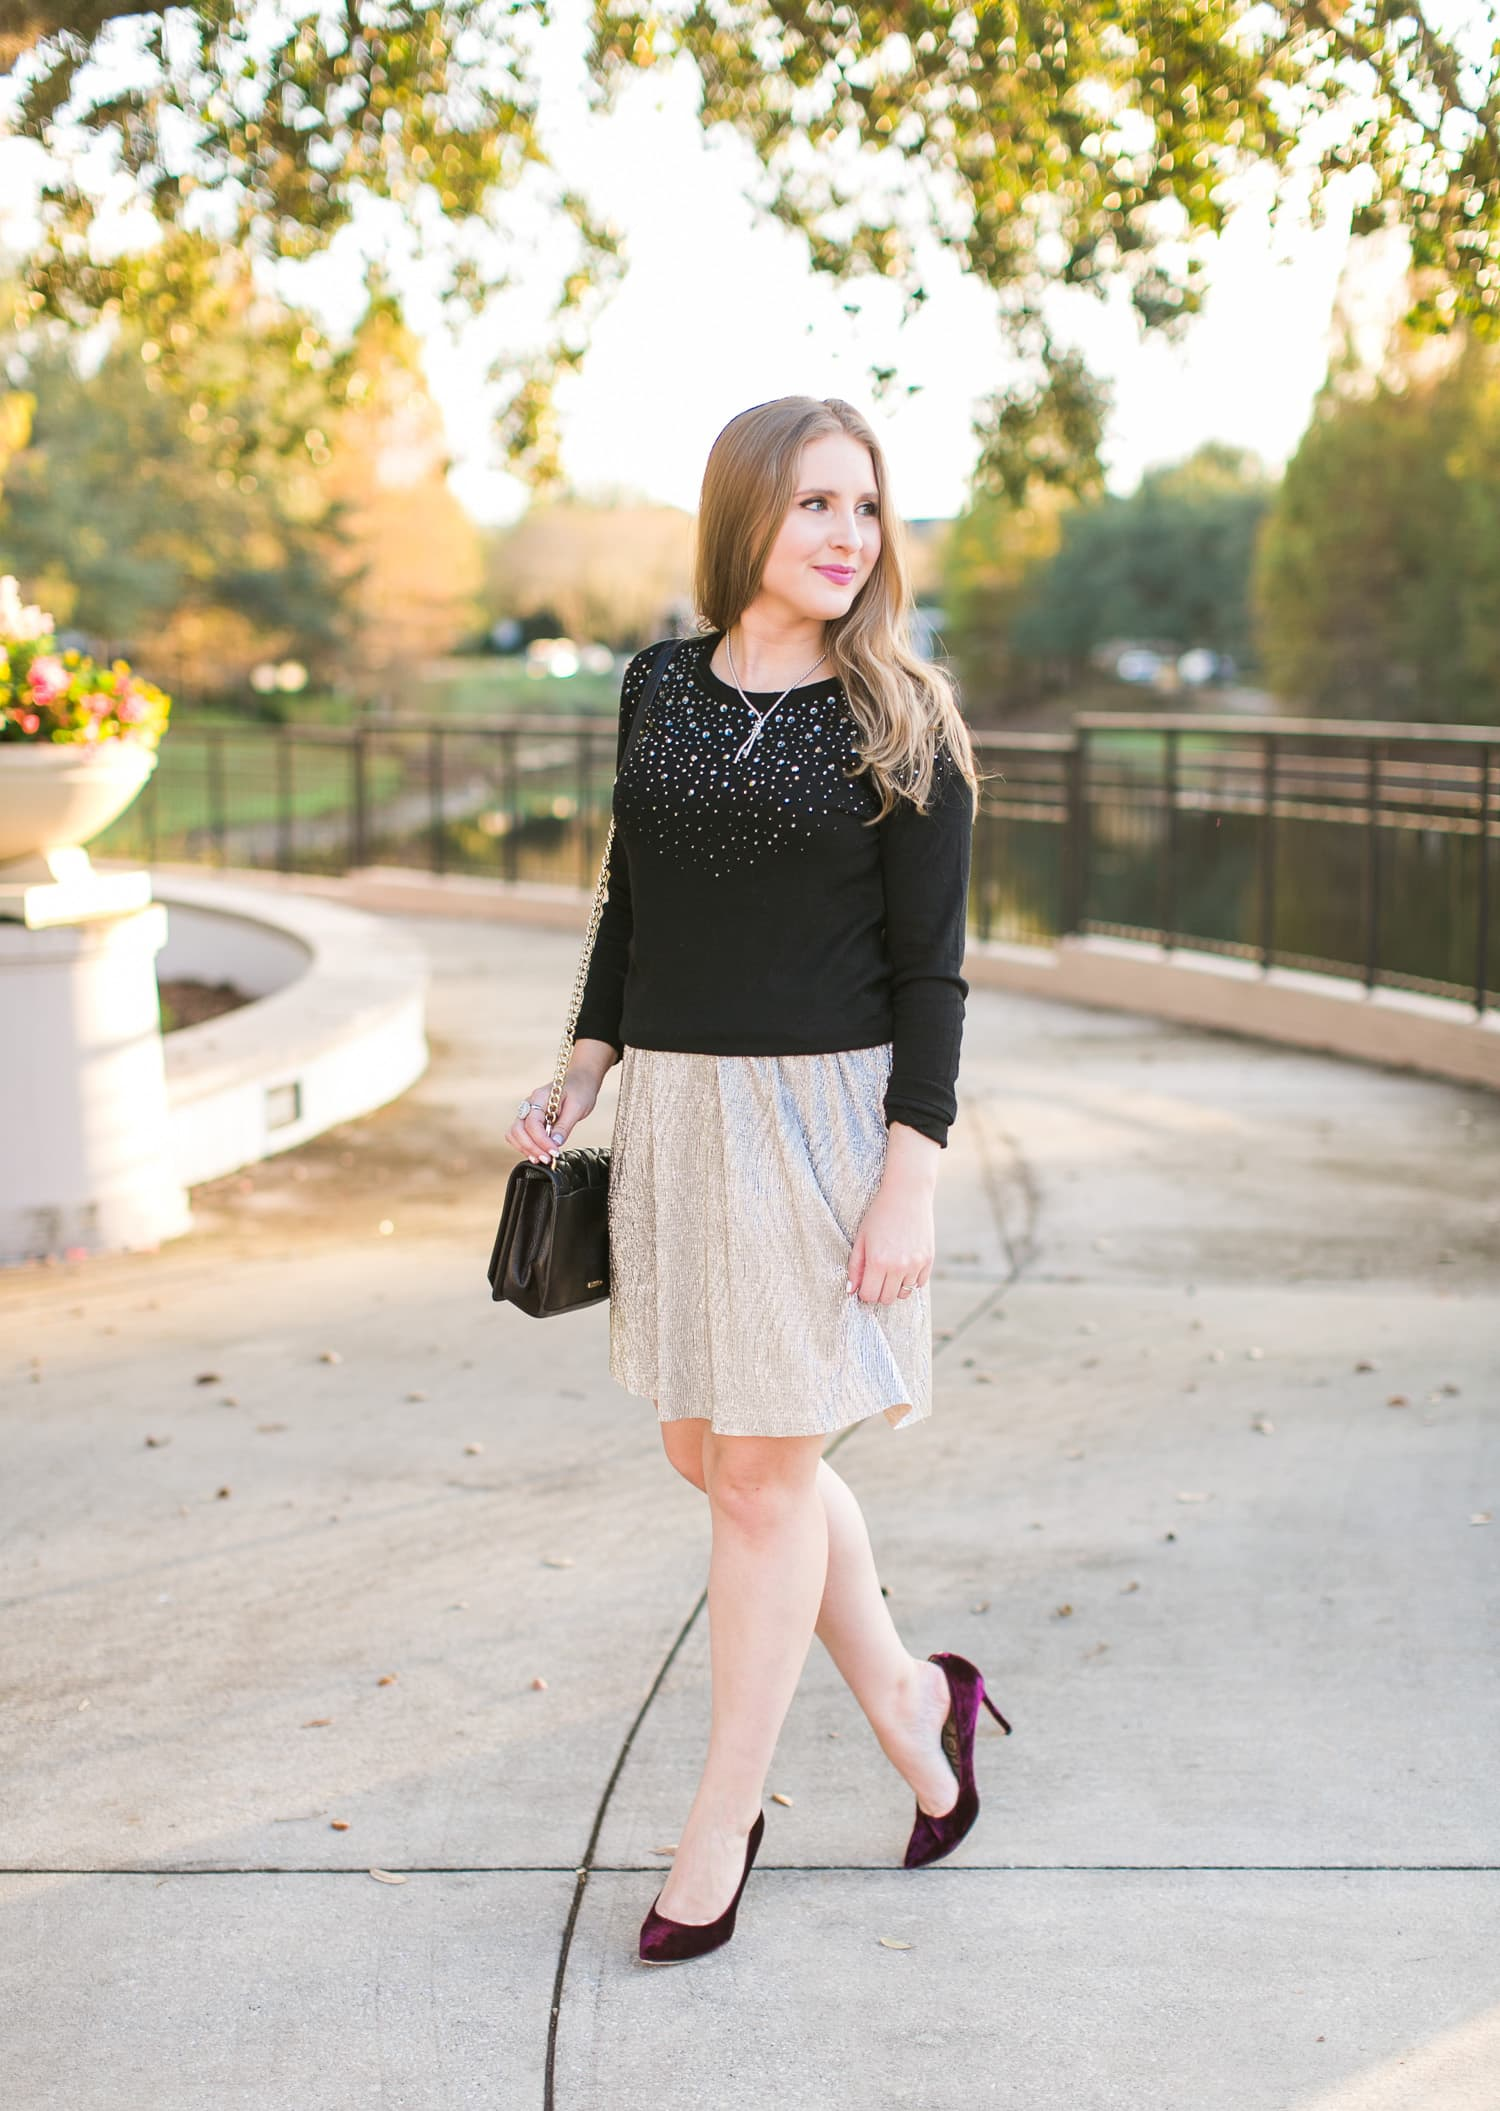 date night golden hour sunset date outfit beautiful woman